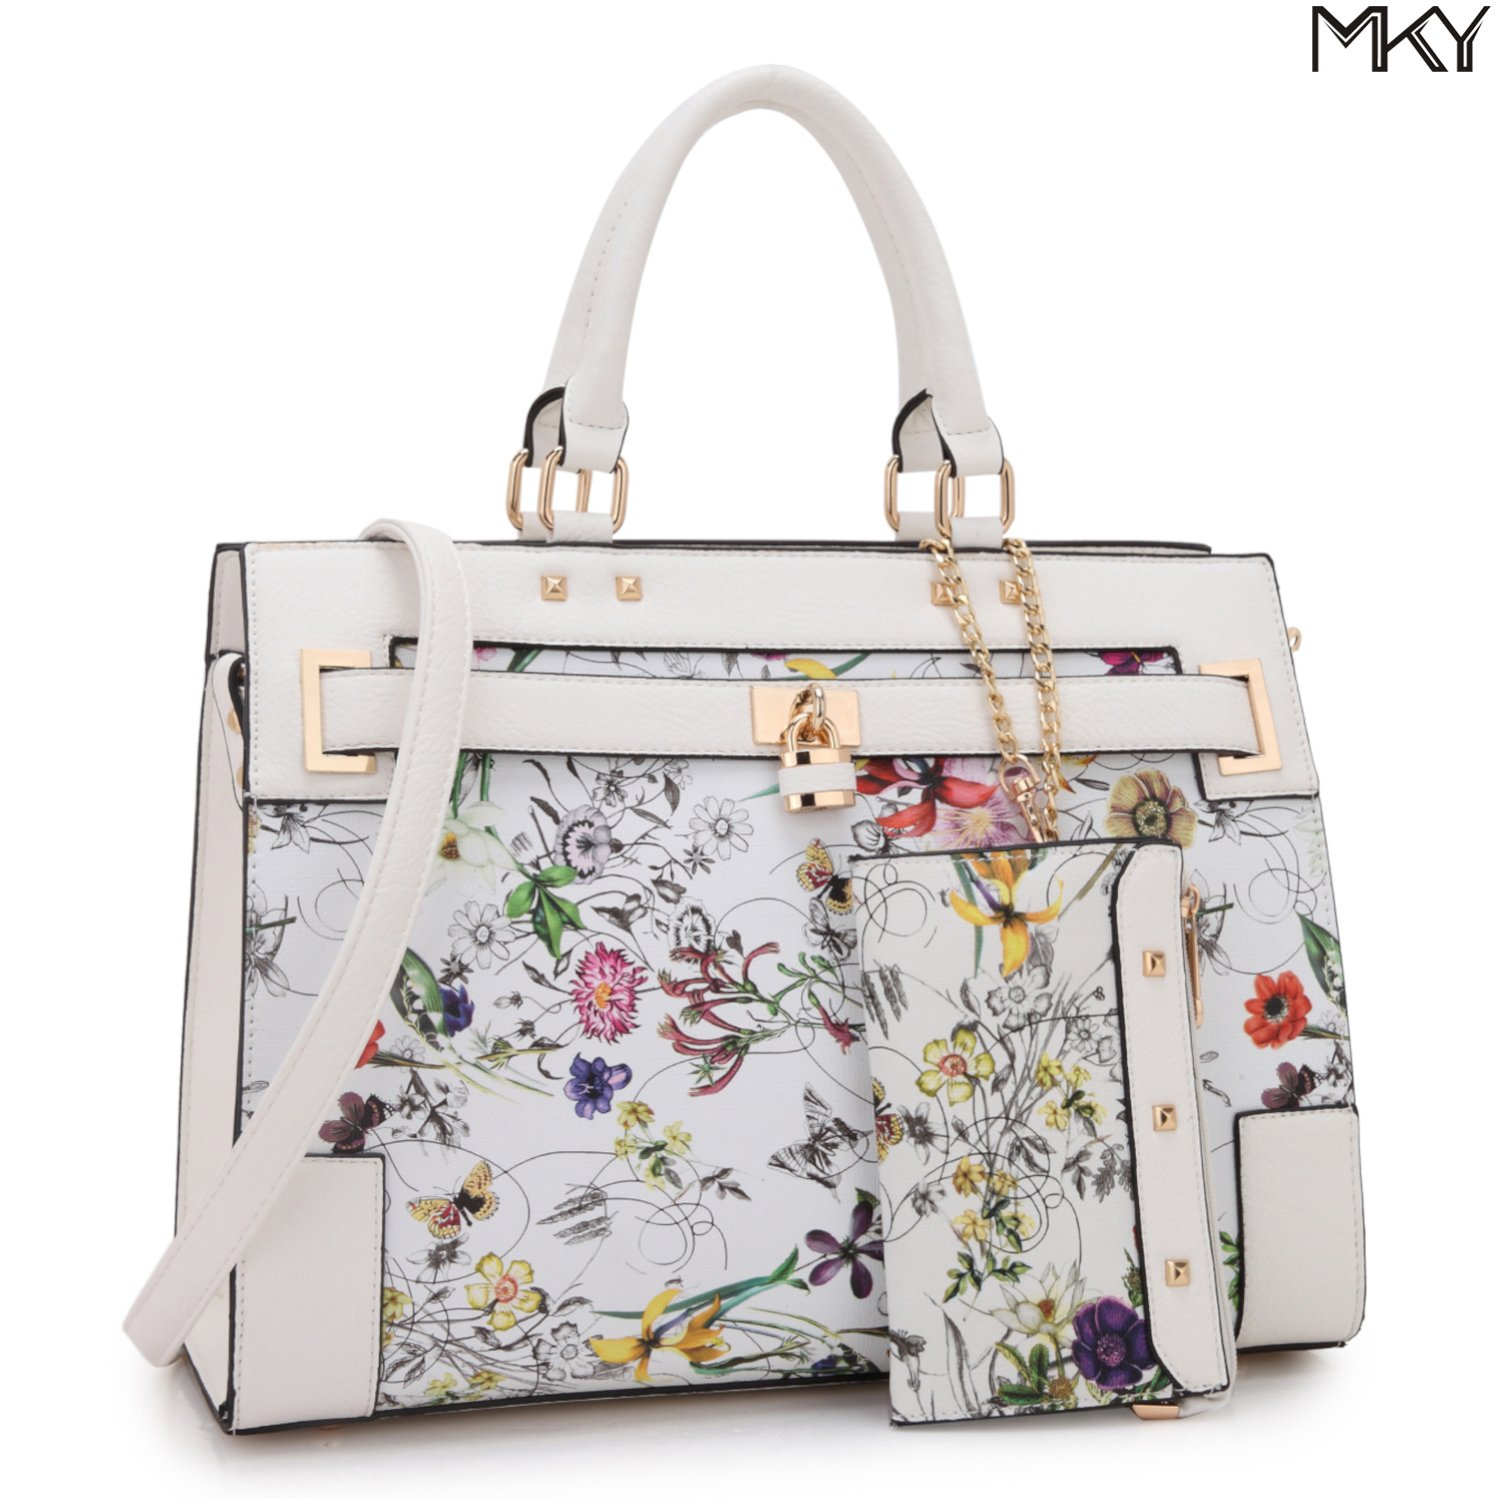 2 Tone Large Satchel Handbag Designer Top Handle Purse Fashion Shoulder Bag (With Zipper Purse-White Floral)